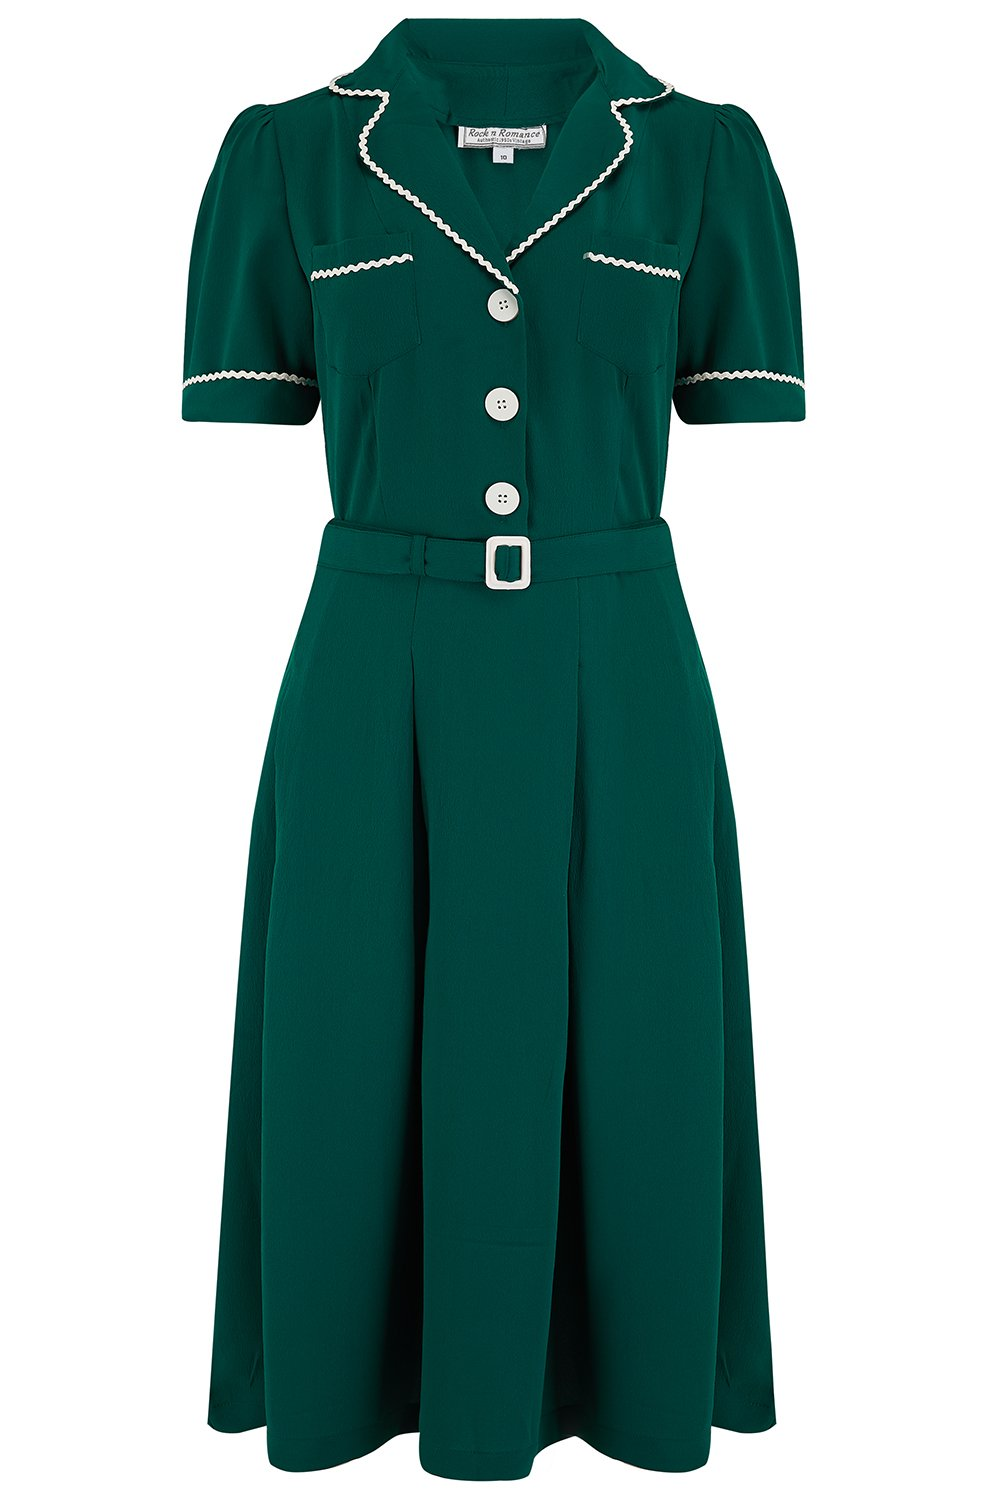 Vintage Shirtwaist Dress History Pre-Order The Kitty Shirtwaister Dress in Green with Contrast Ric-Rac True Late 40s Early 1950s Vintage Style £49.00 AT vintagedancer.com